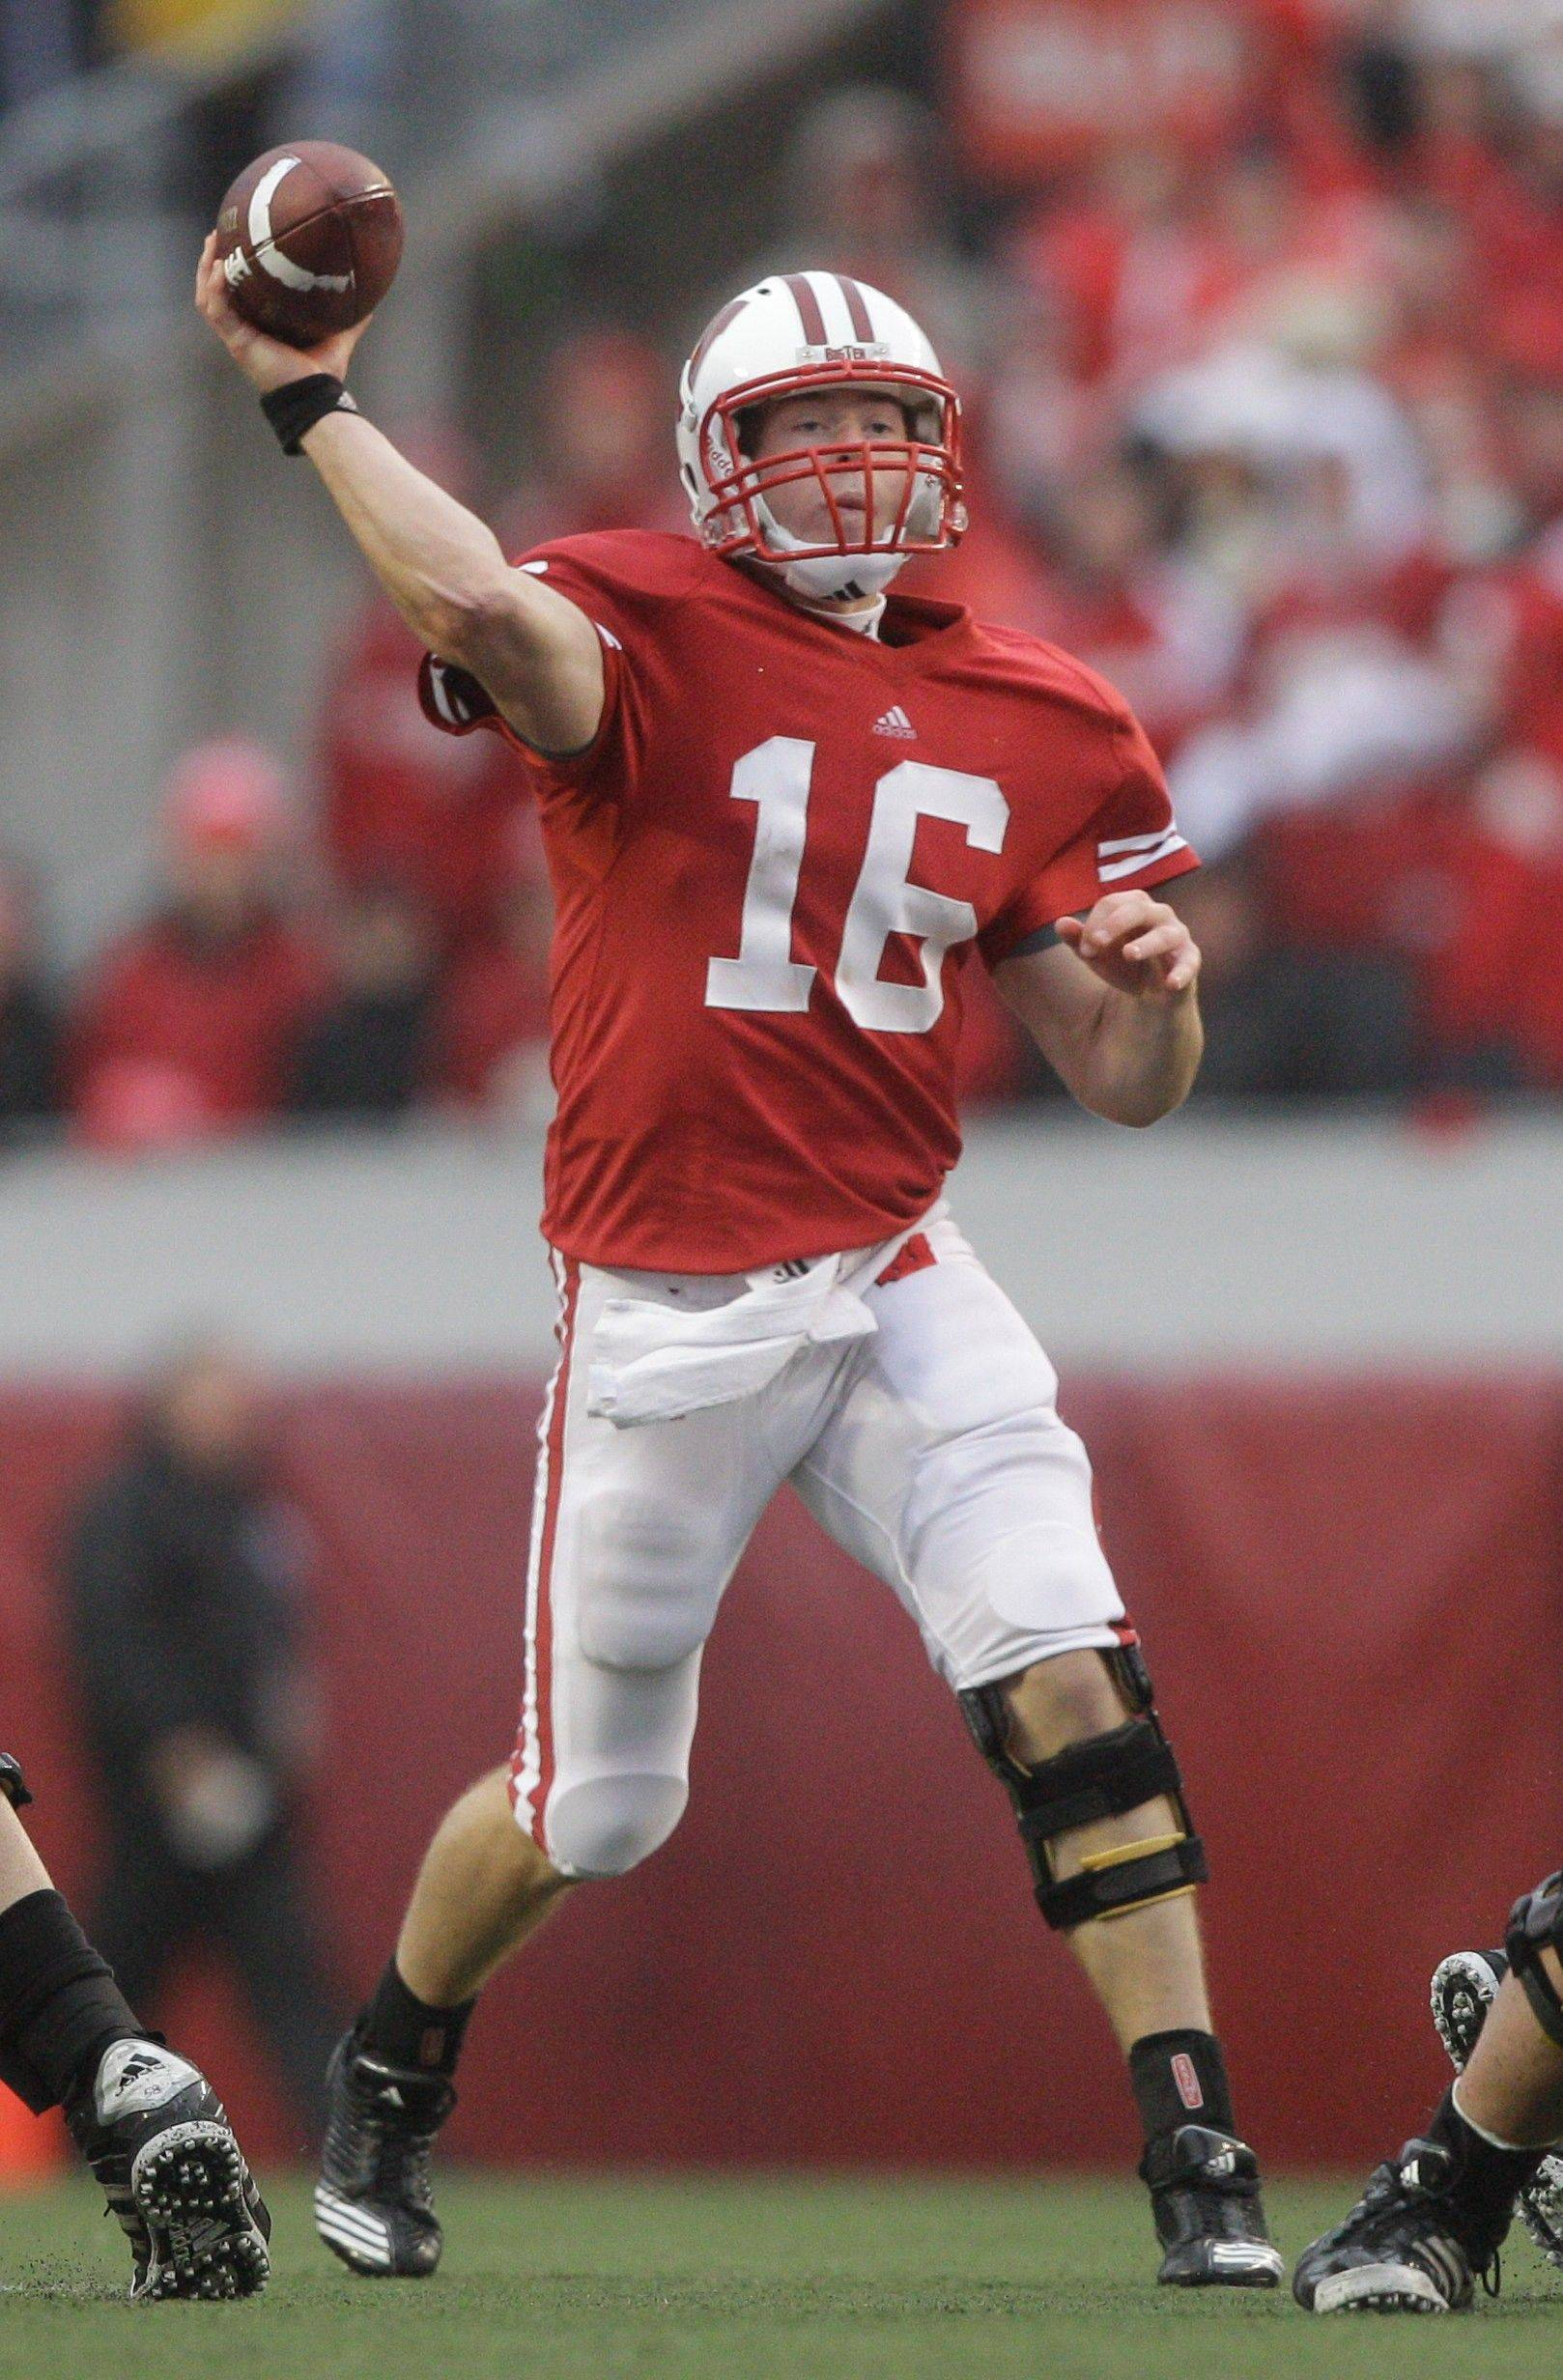 Wisconsin coach Bret Bielema says quarterback Scott Tolzien is a winner on and off the field for the Badgers.